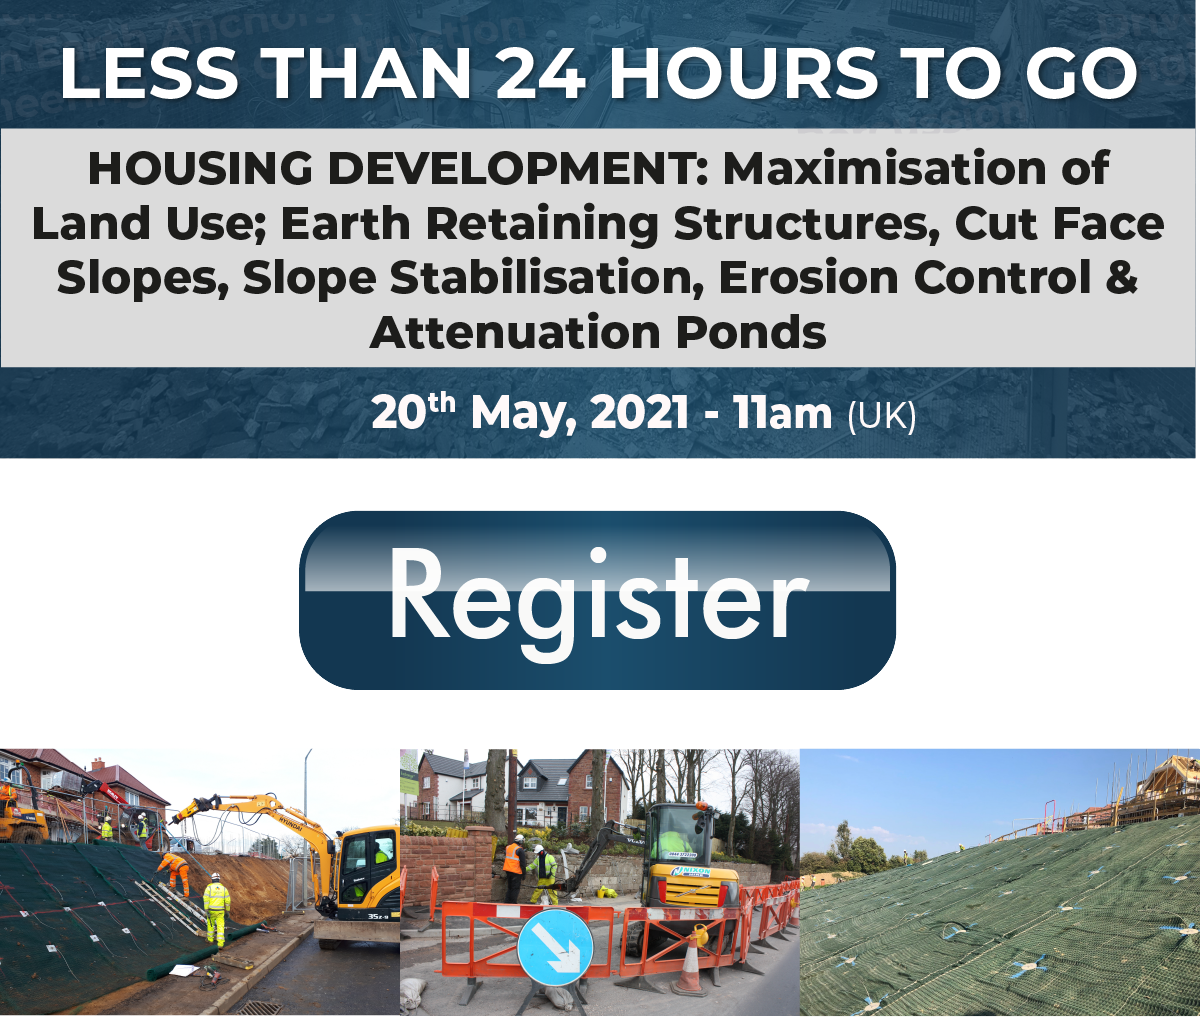 Less than 24 hours to go until this week's webinar 'Housing Development'